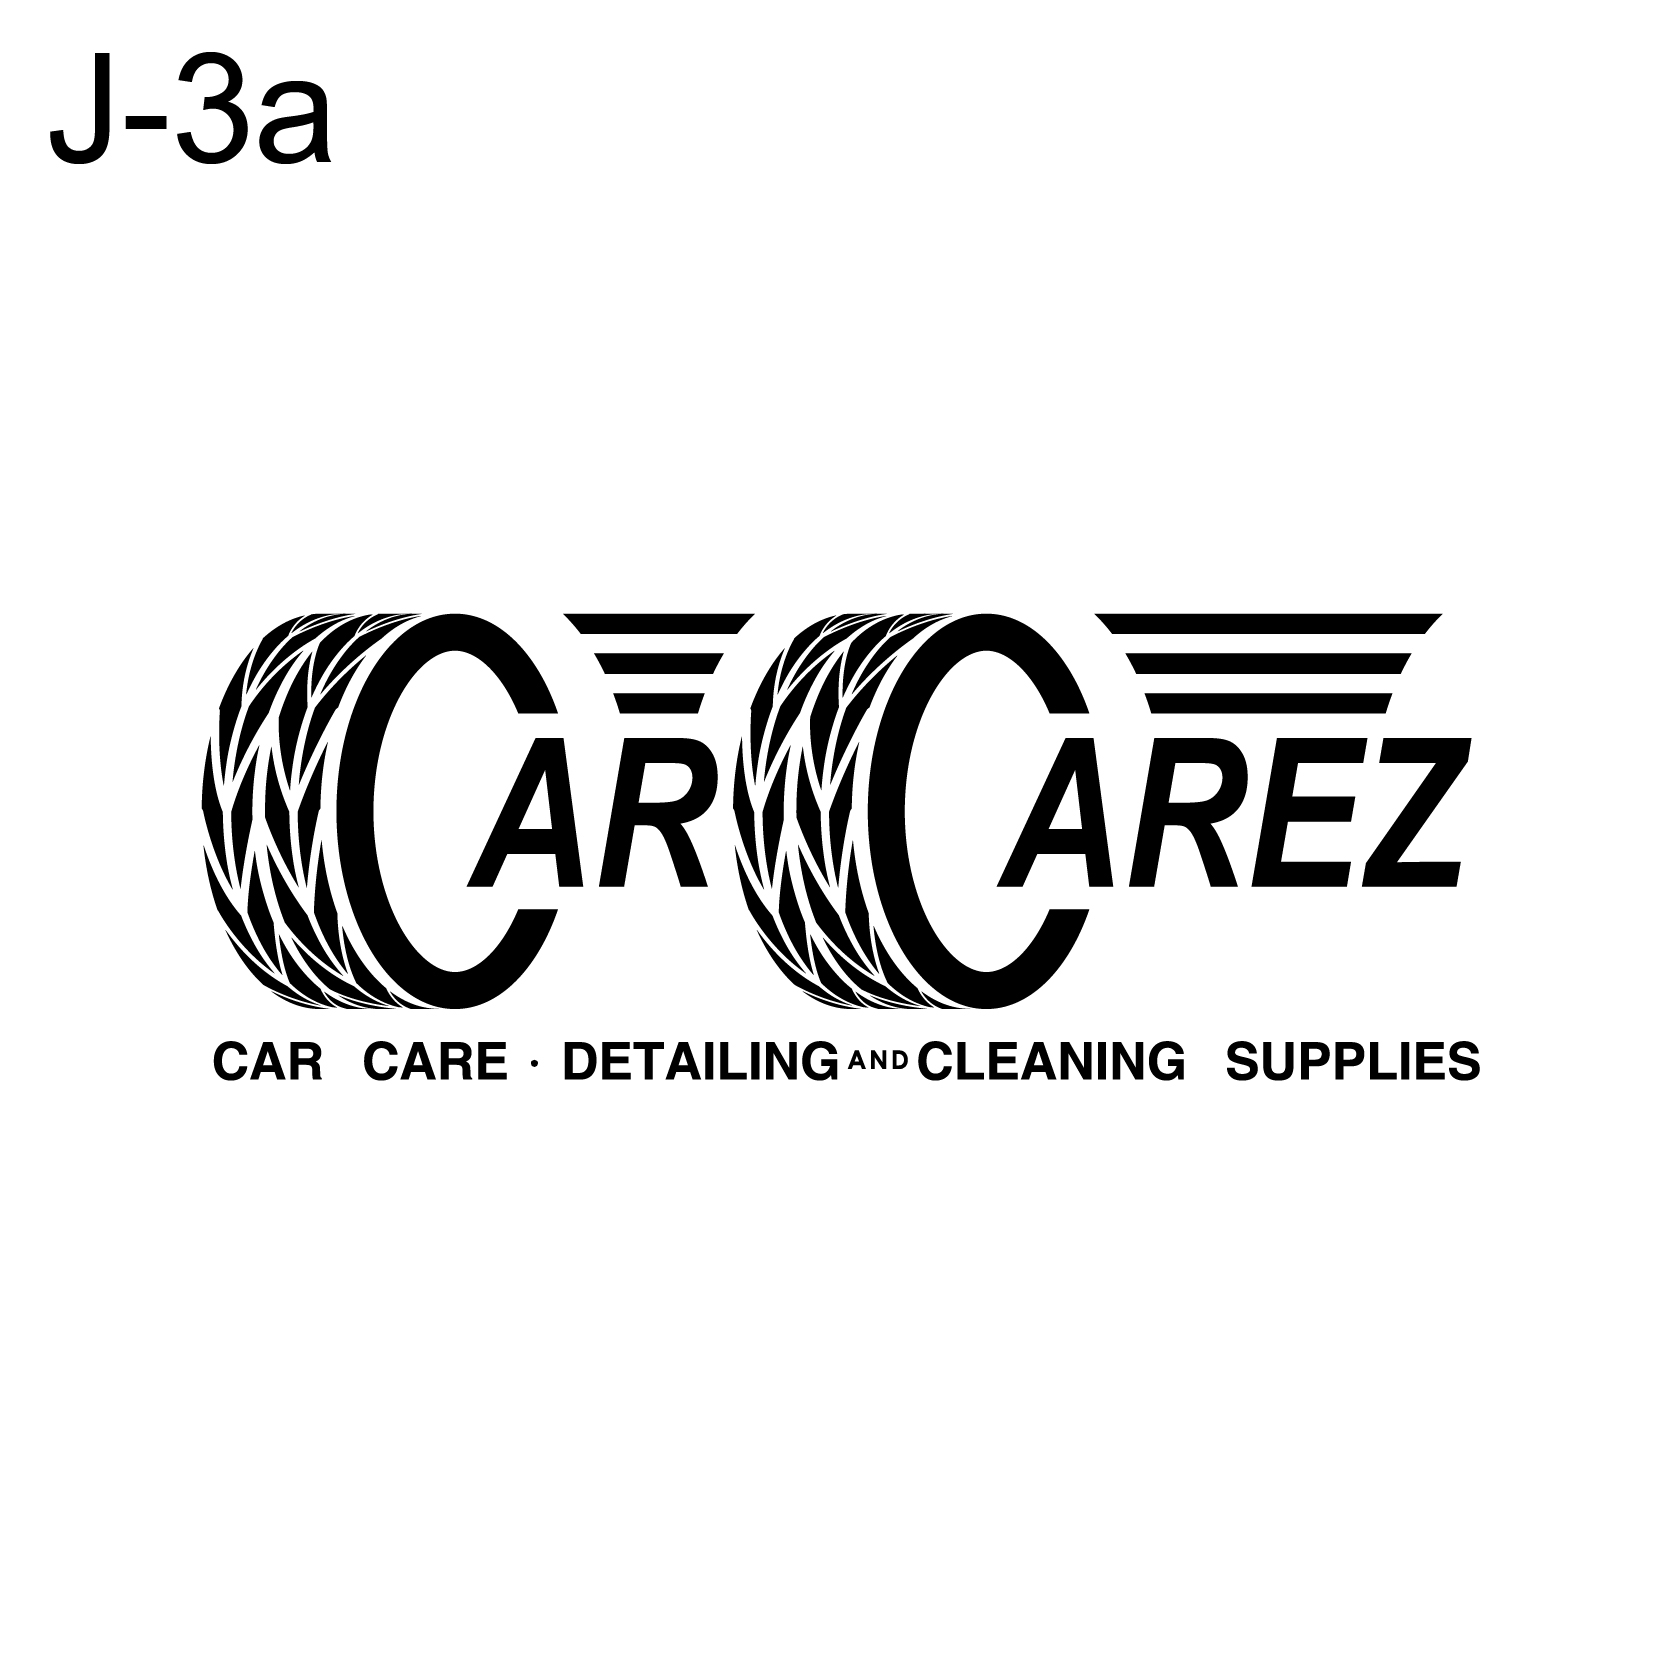 carcarez_logo_sample_J_modified_3a-01.jpg